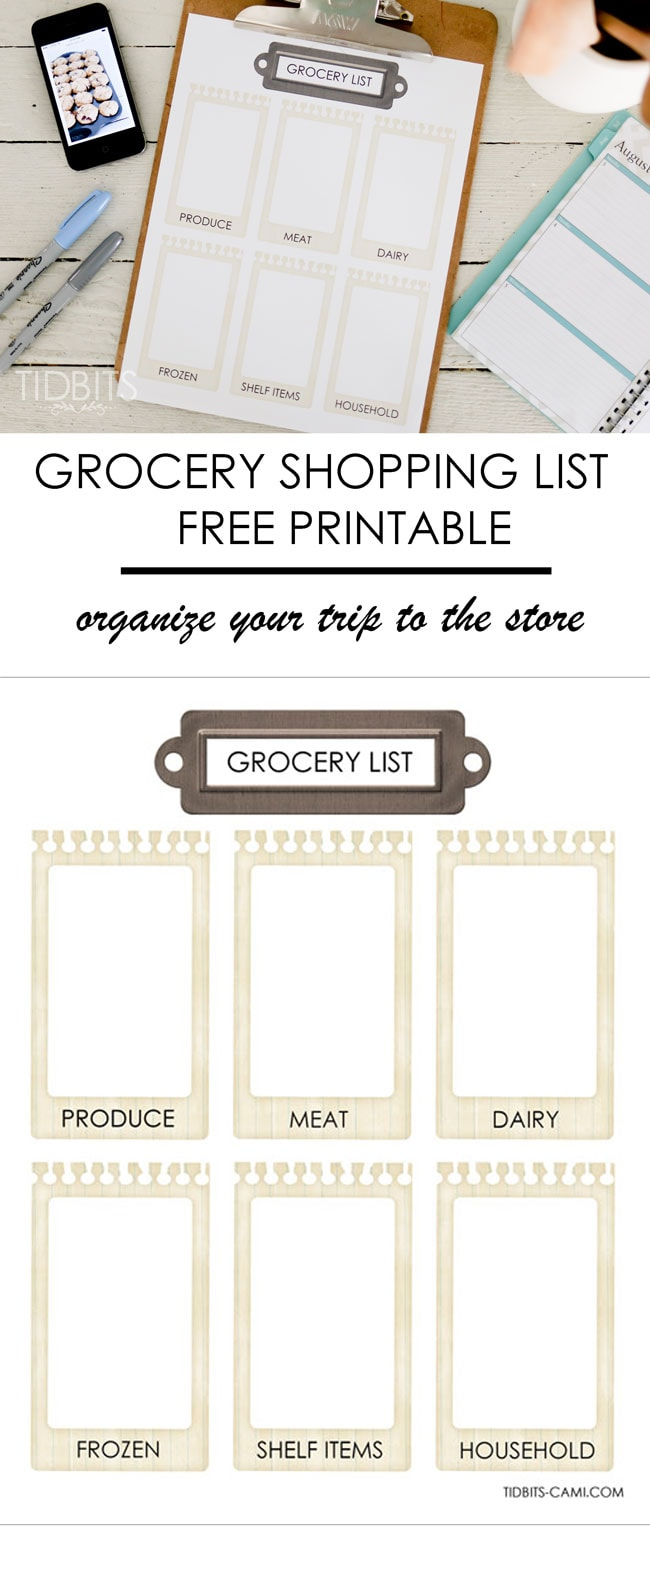 Grocery shopping list printable - perfect for organizing your trips to the store.